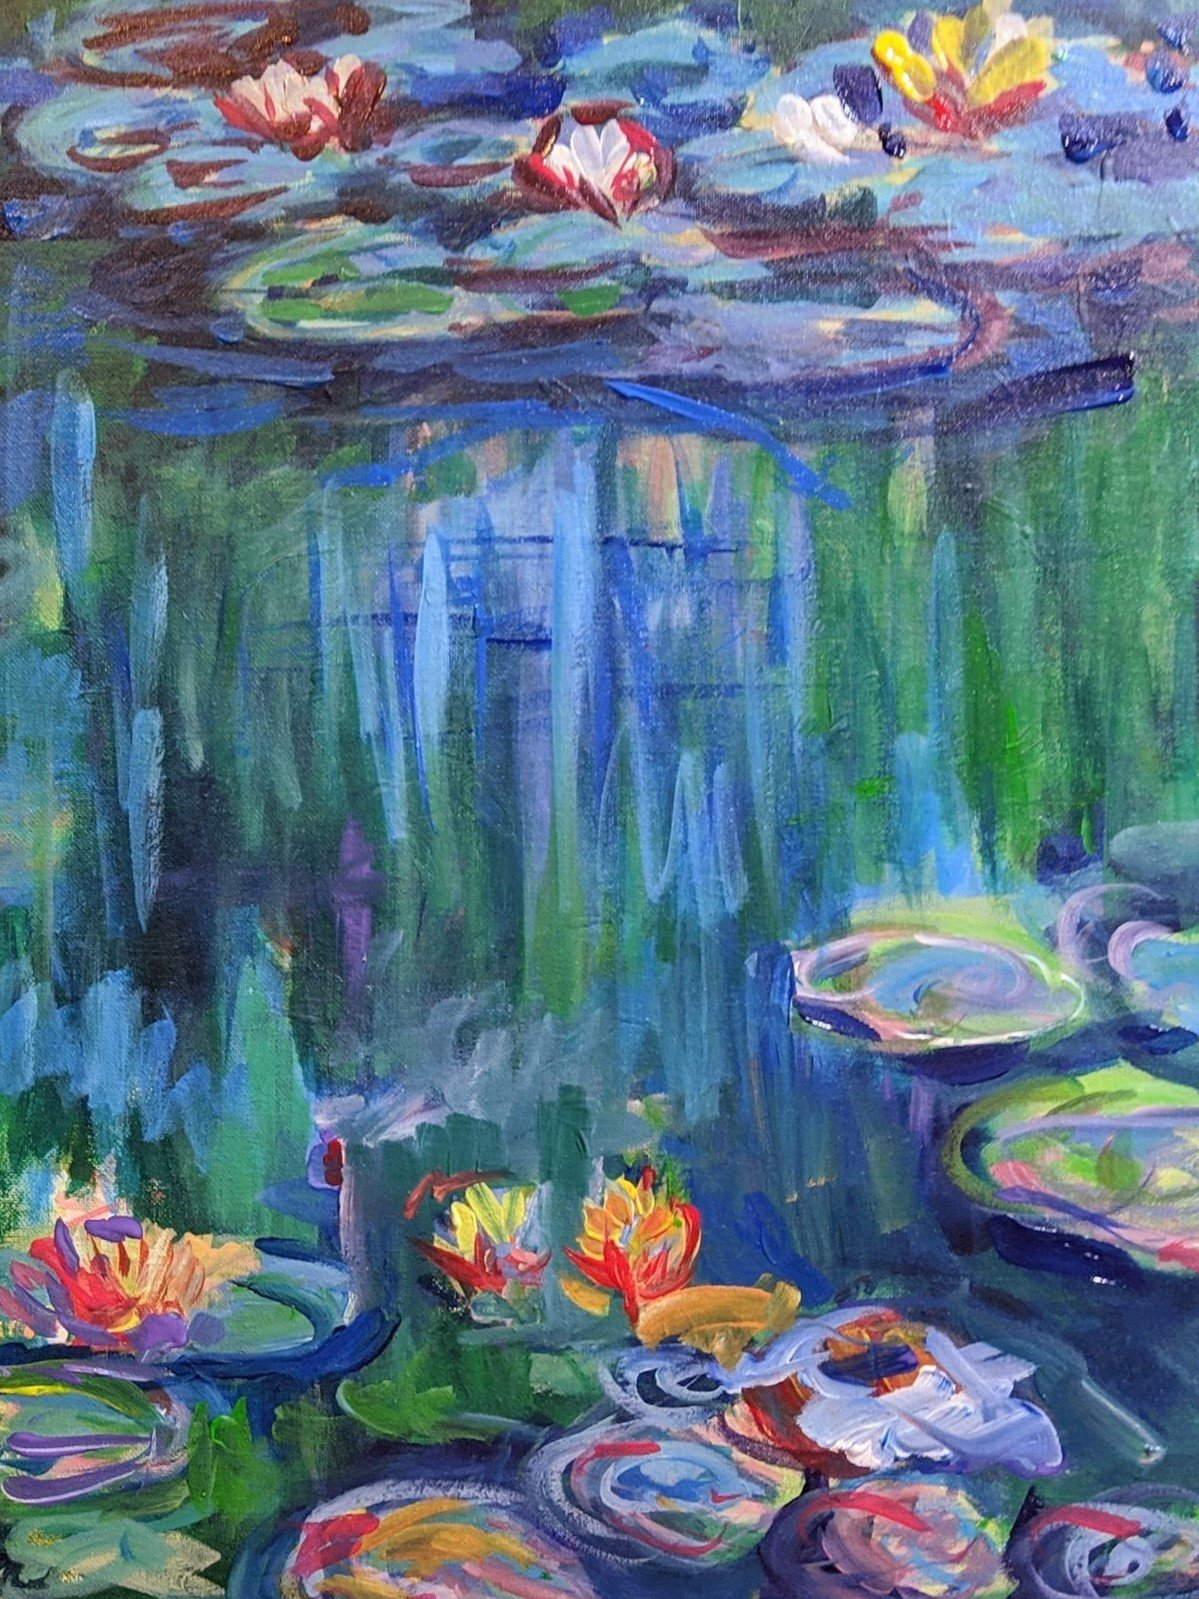 Water Lilies (1897-1898) by Claude Monet - Sold